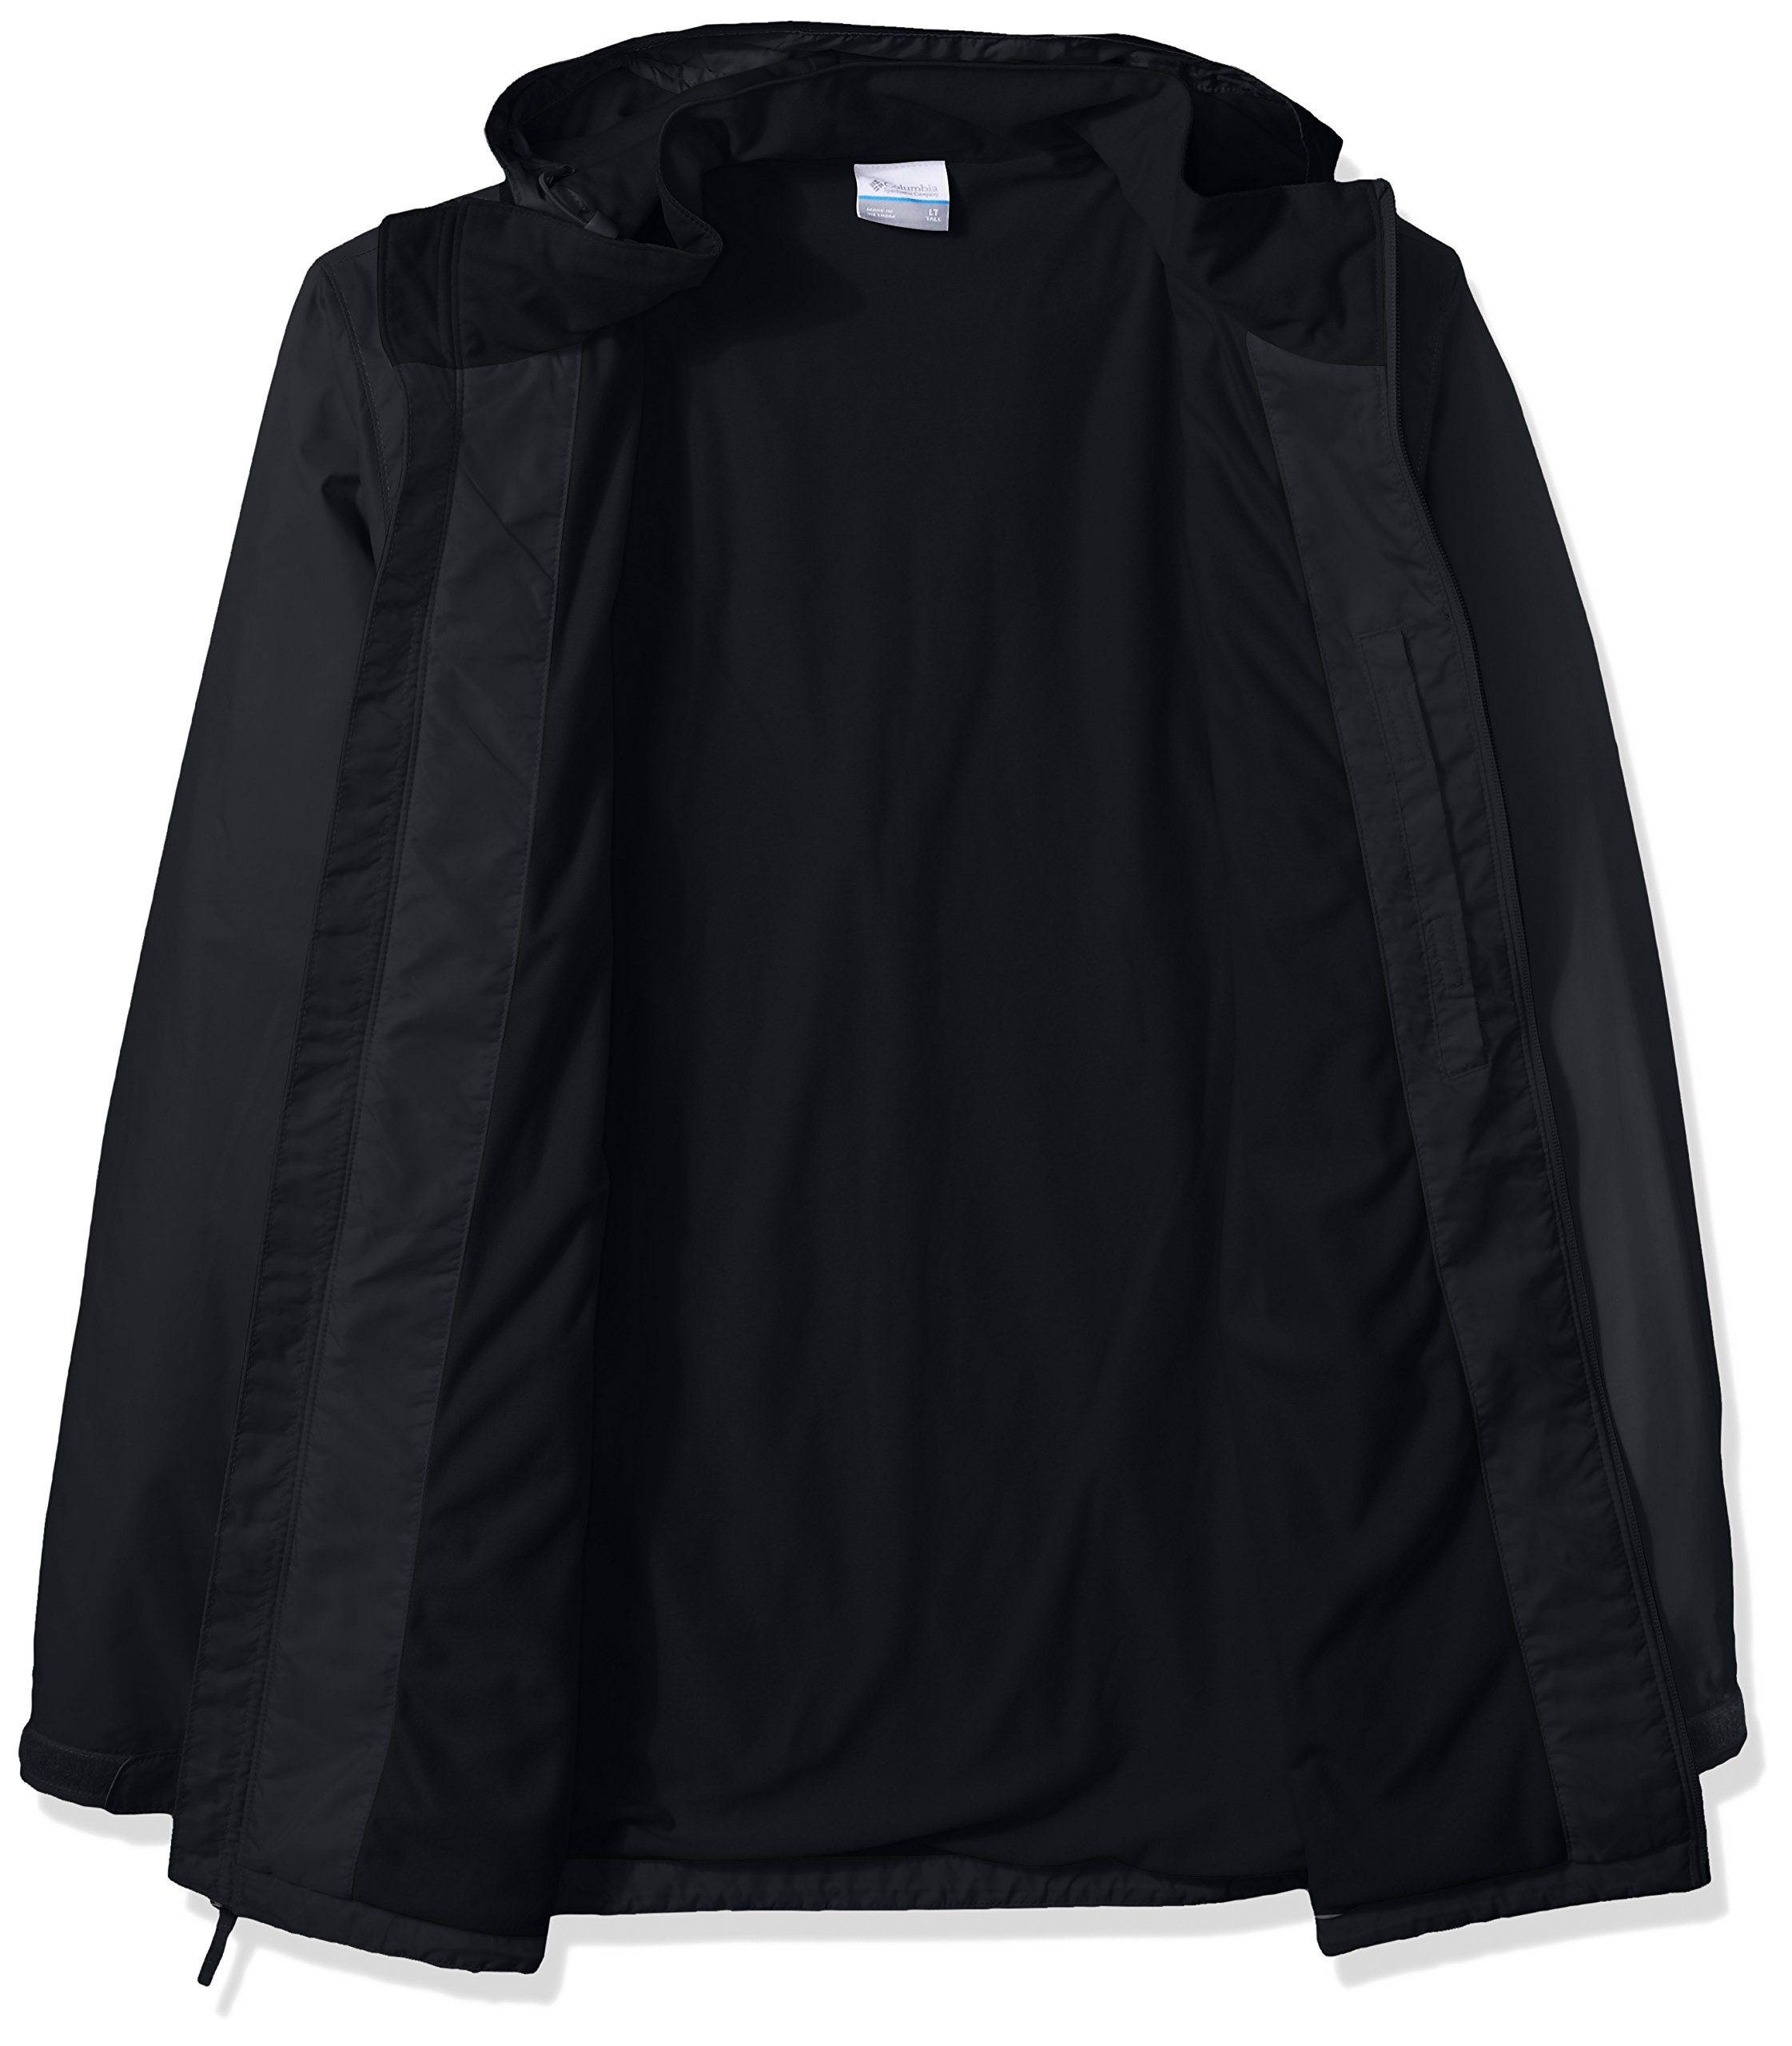 Columbia Men's Big and Tall Glennaker Lake Lined Rain Jacket, Black, 3XT by Columbia (Image #2)